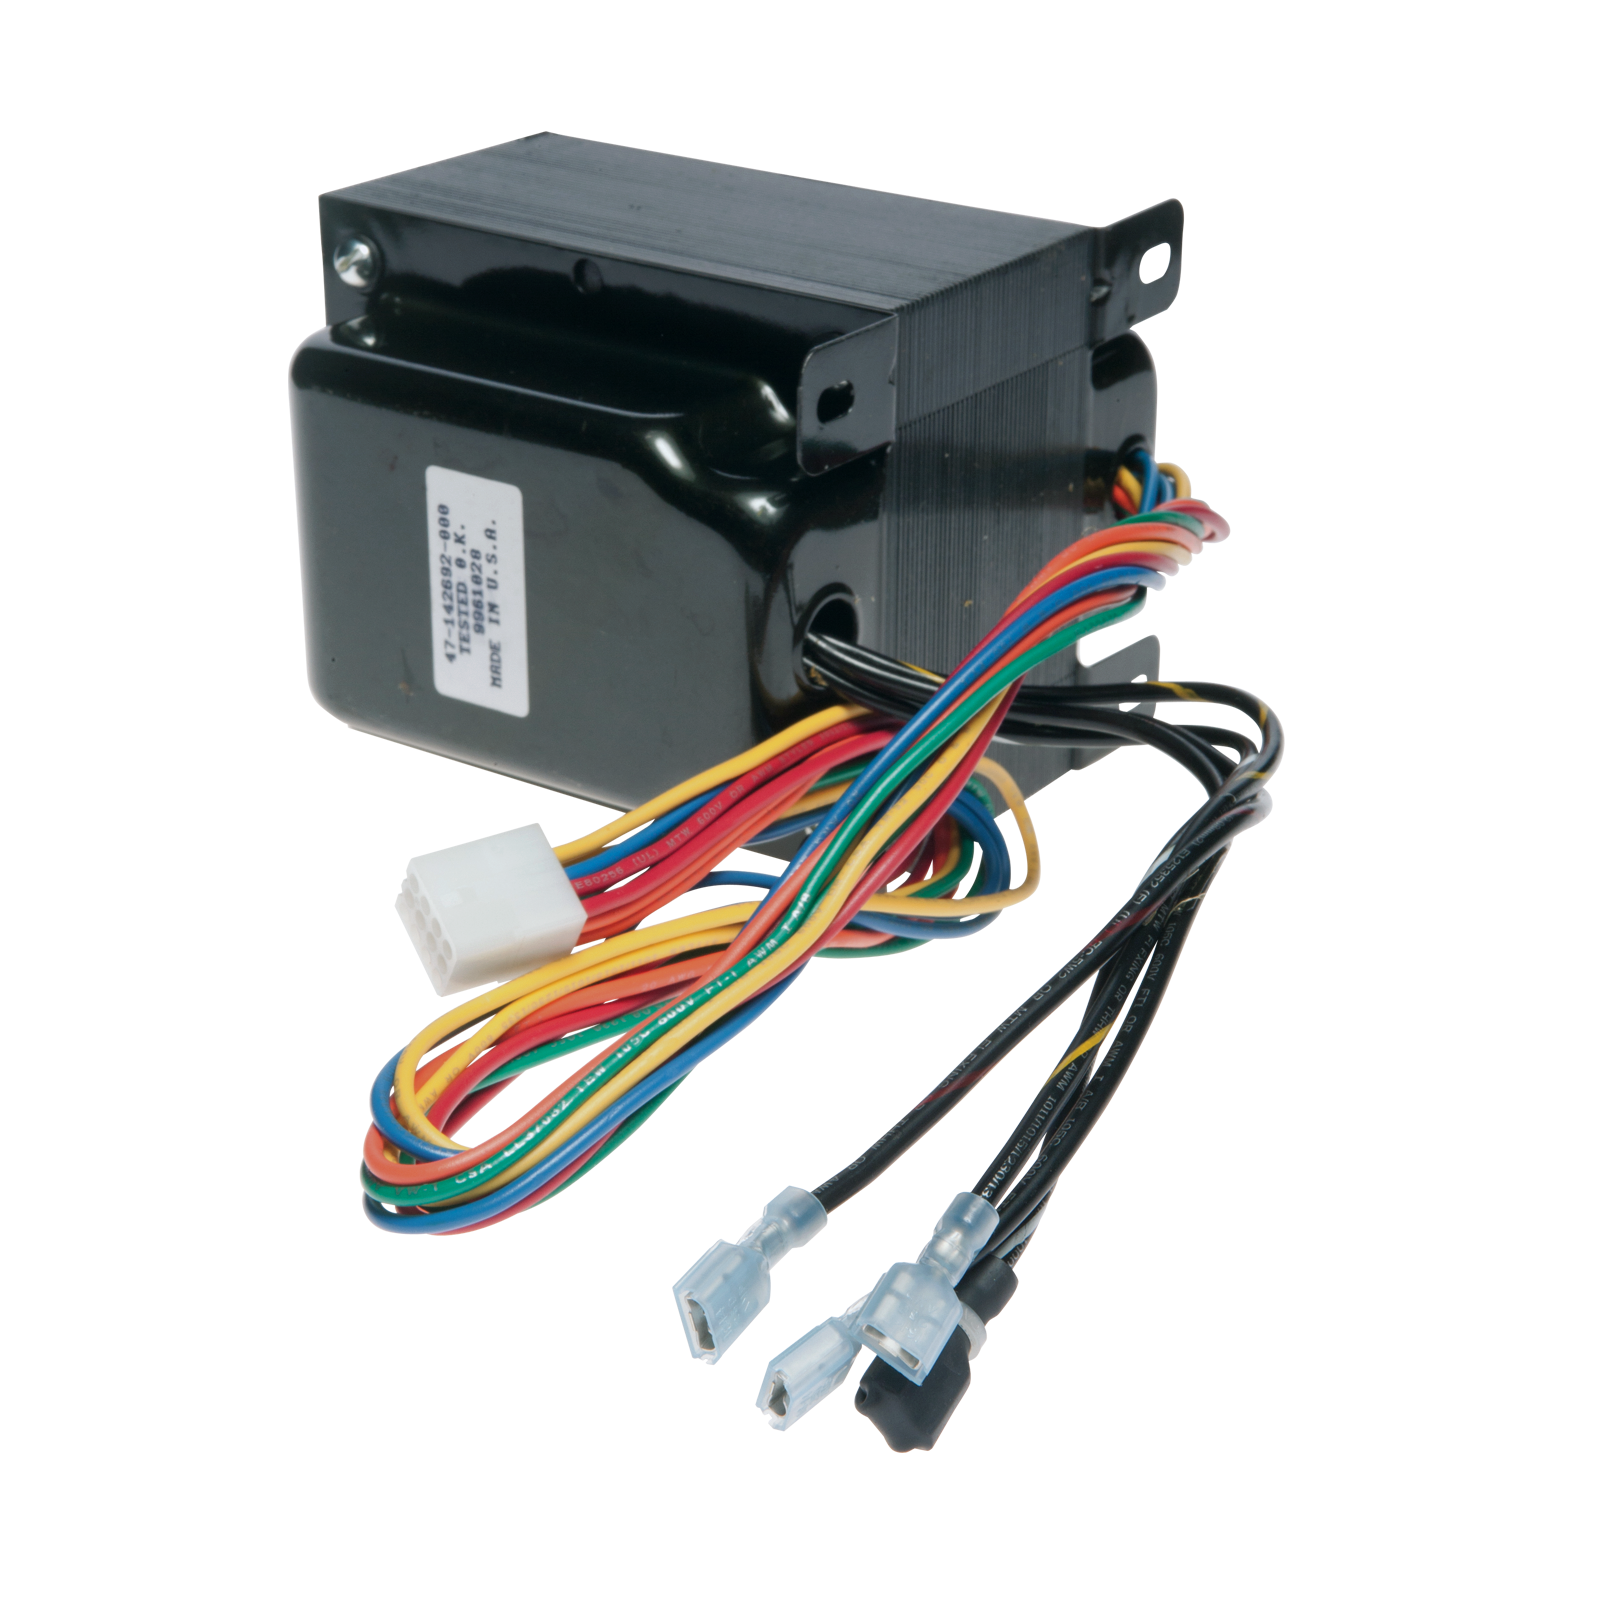 Http Bowling Centers Equipment Parts Brunswick A2 Electrical Wiring Gs 47 142692 000 1600x1600